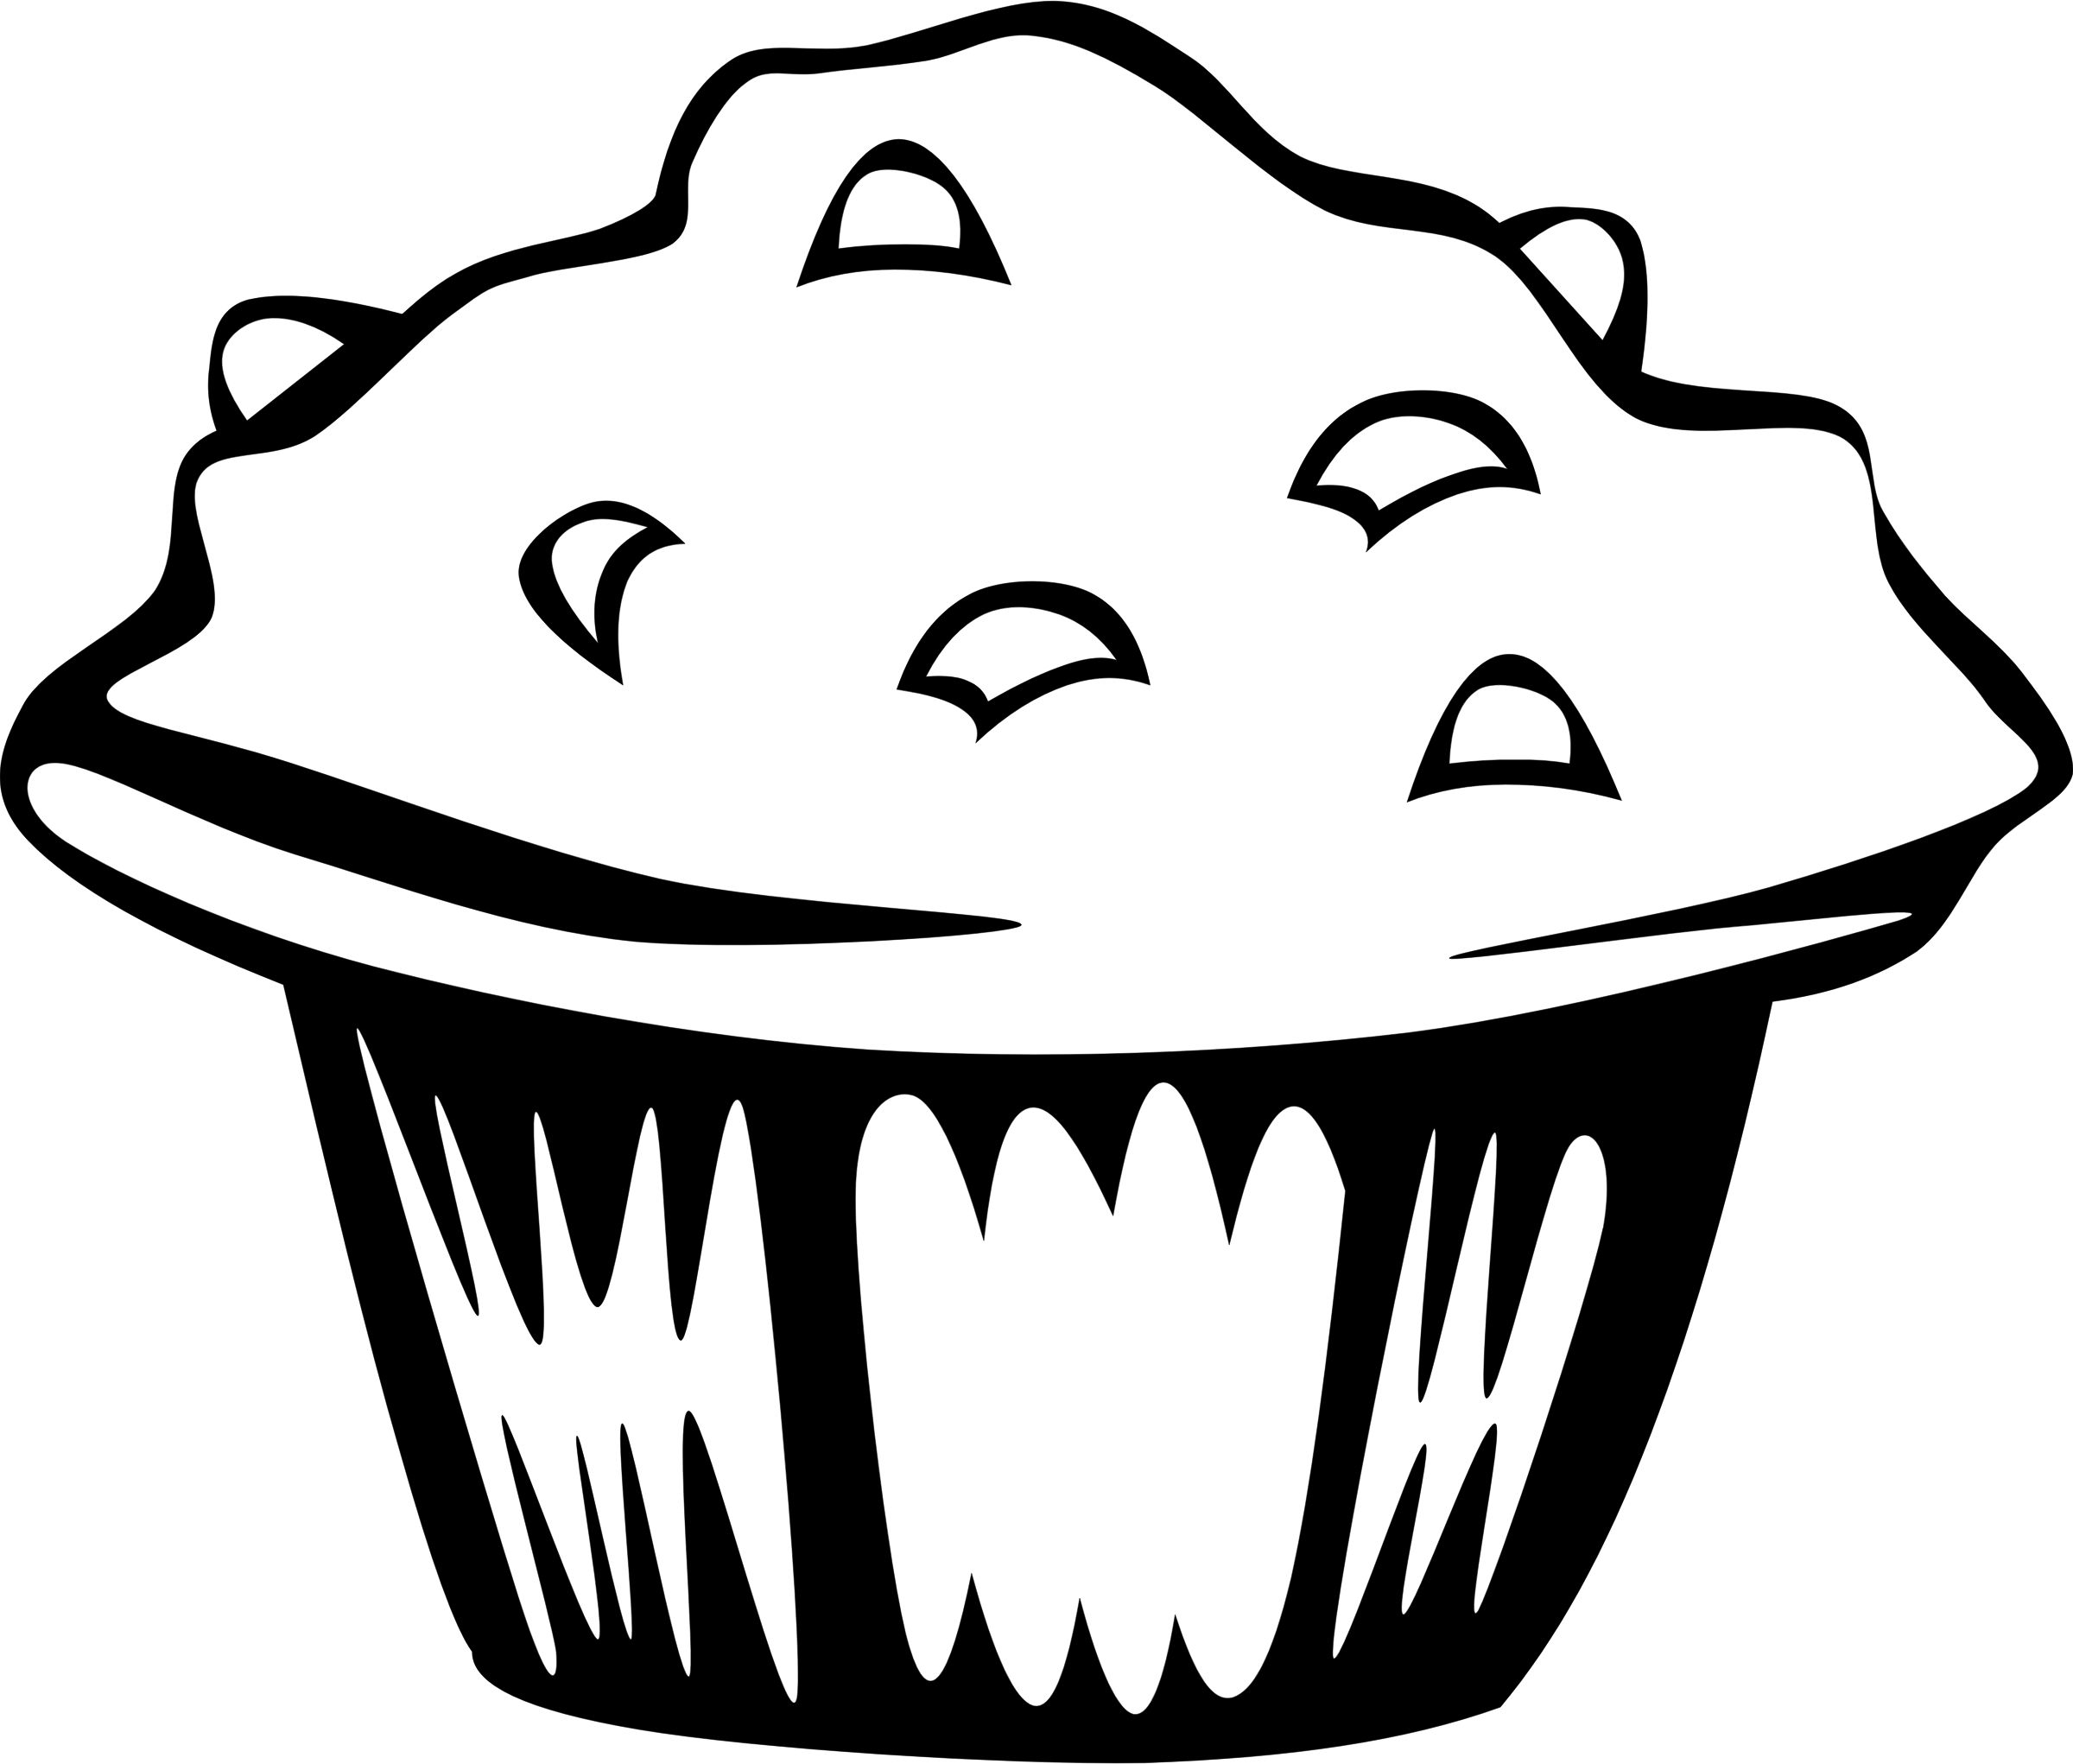 Muffins clipart outline. Fast food breakfast muffin